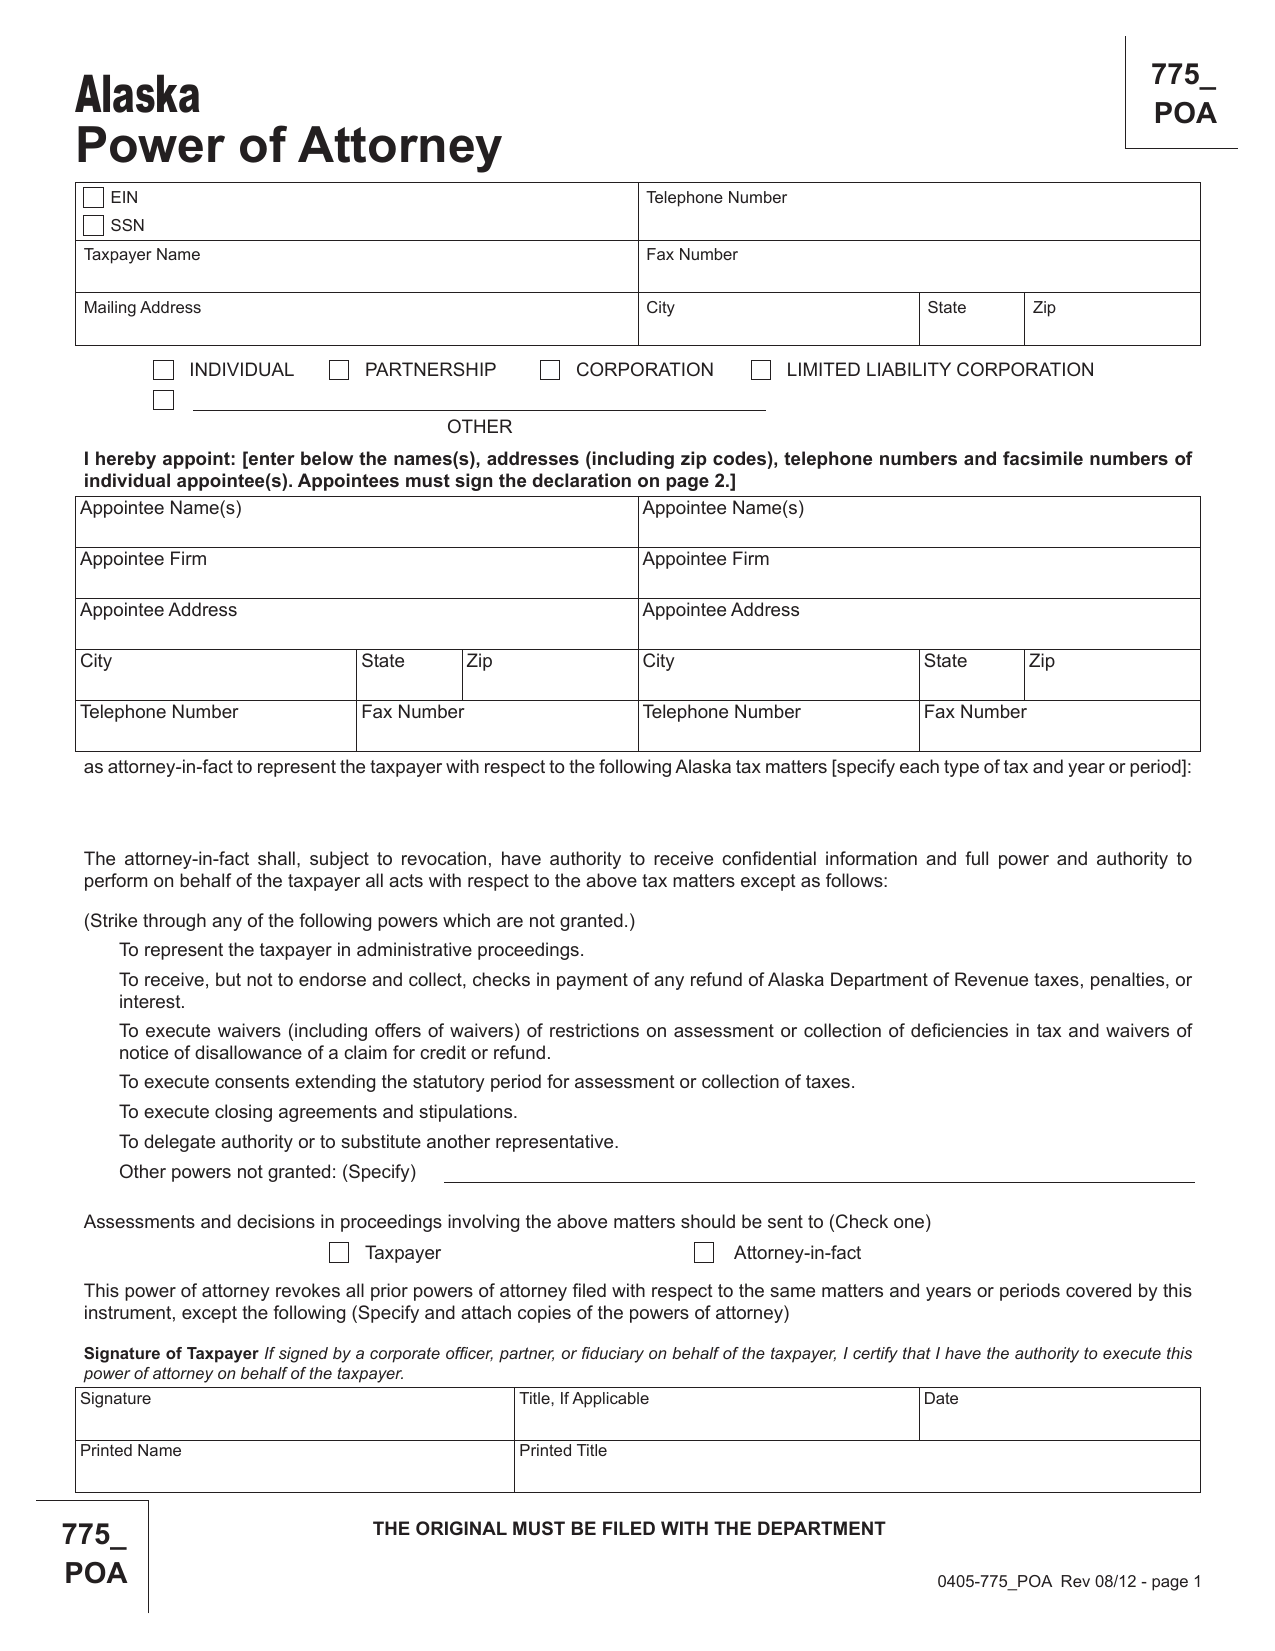 Download Alaska Dept Of Revenue Tax Power Of Attorney Form 775